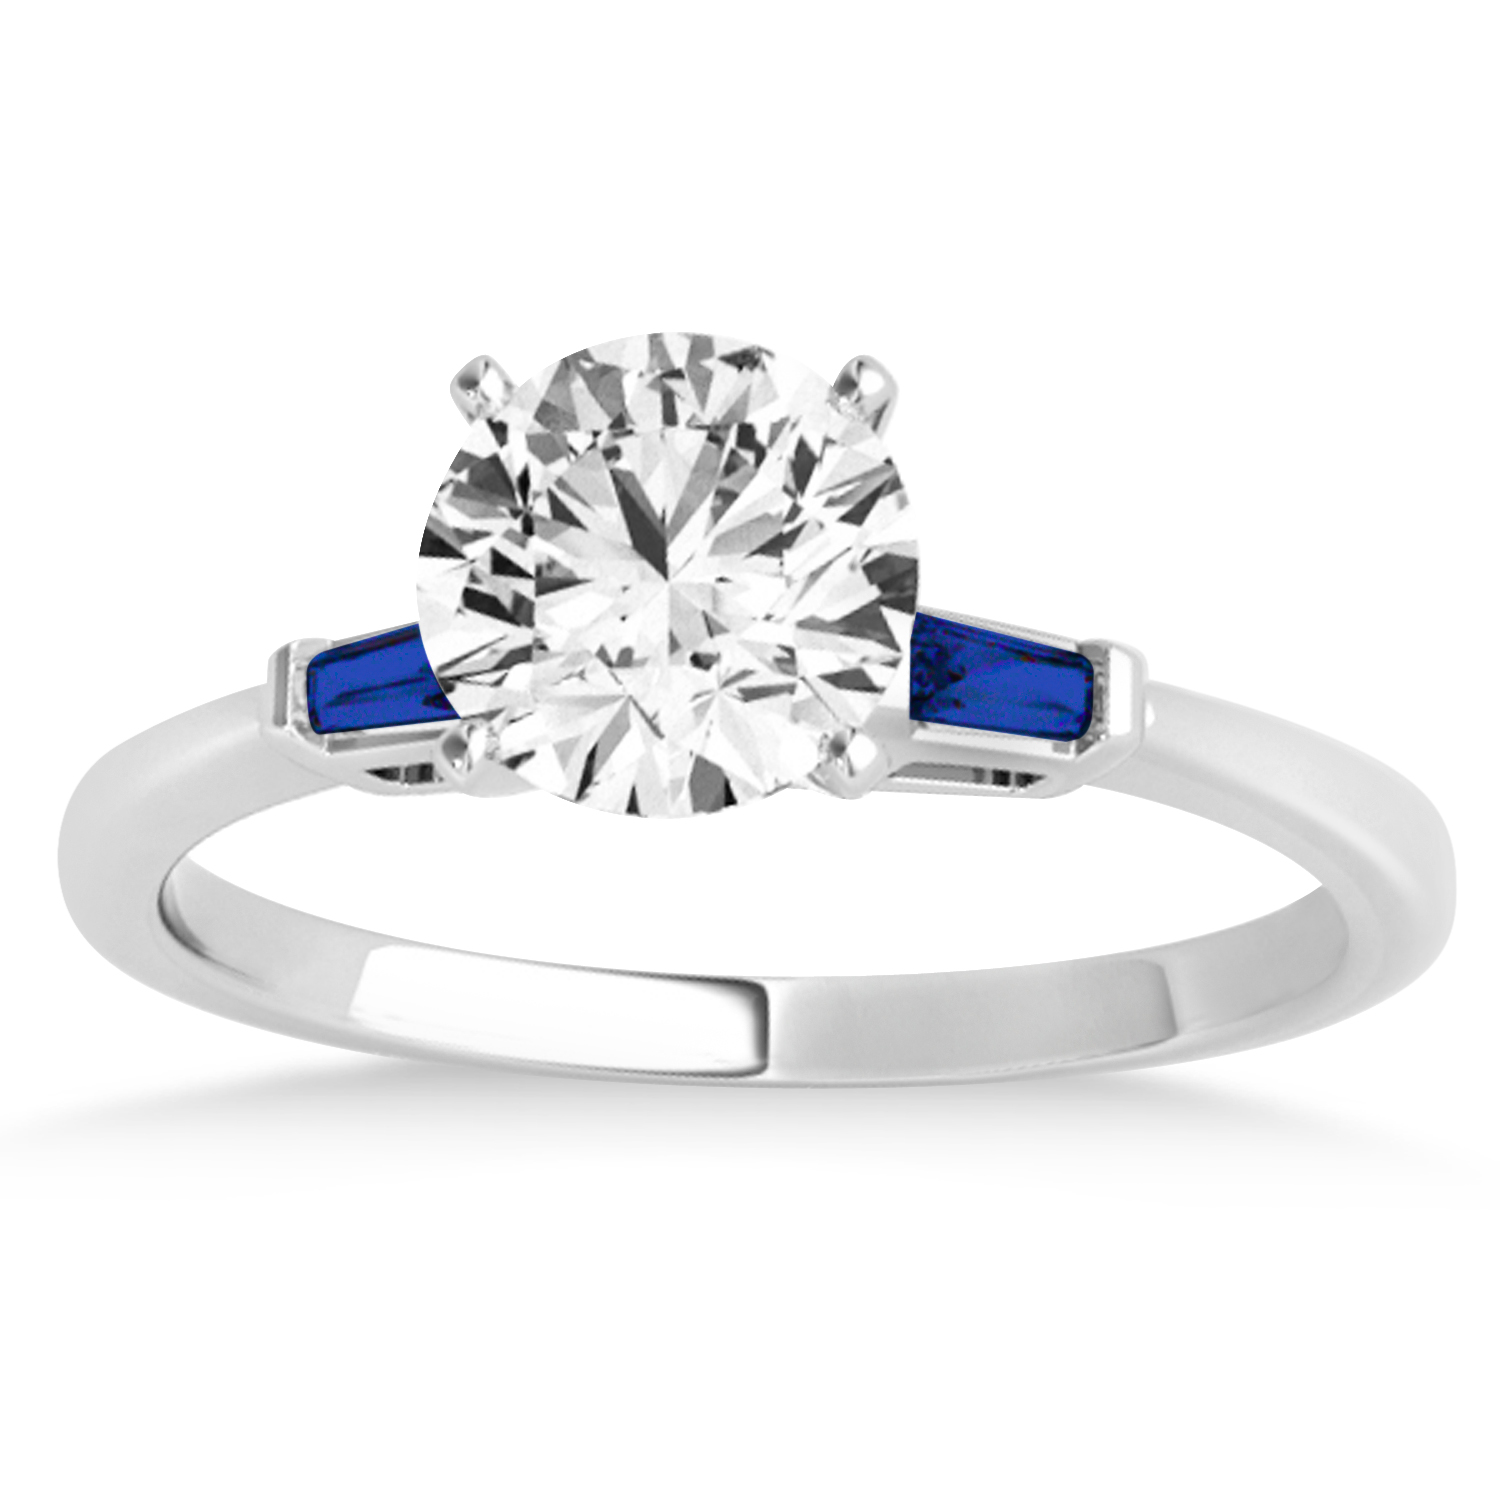 Tapered Baguette 3-Stone Blue Sapphire Engagement Ring Platinum (0.10ct)